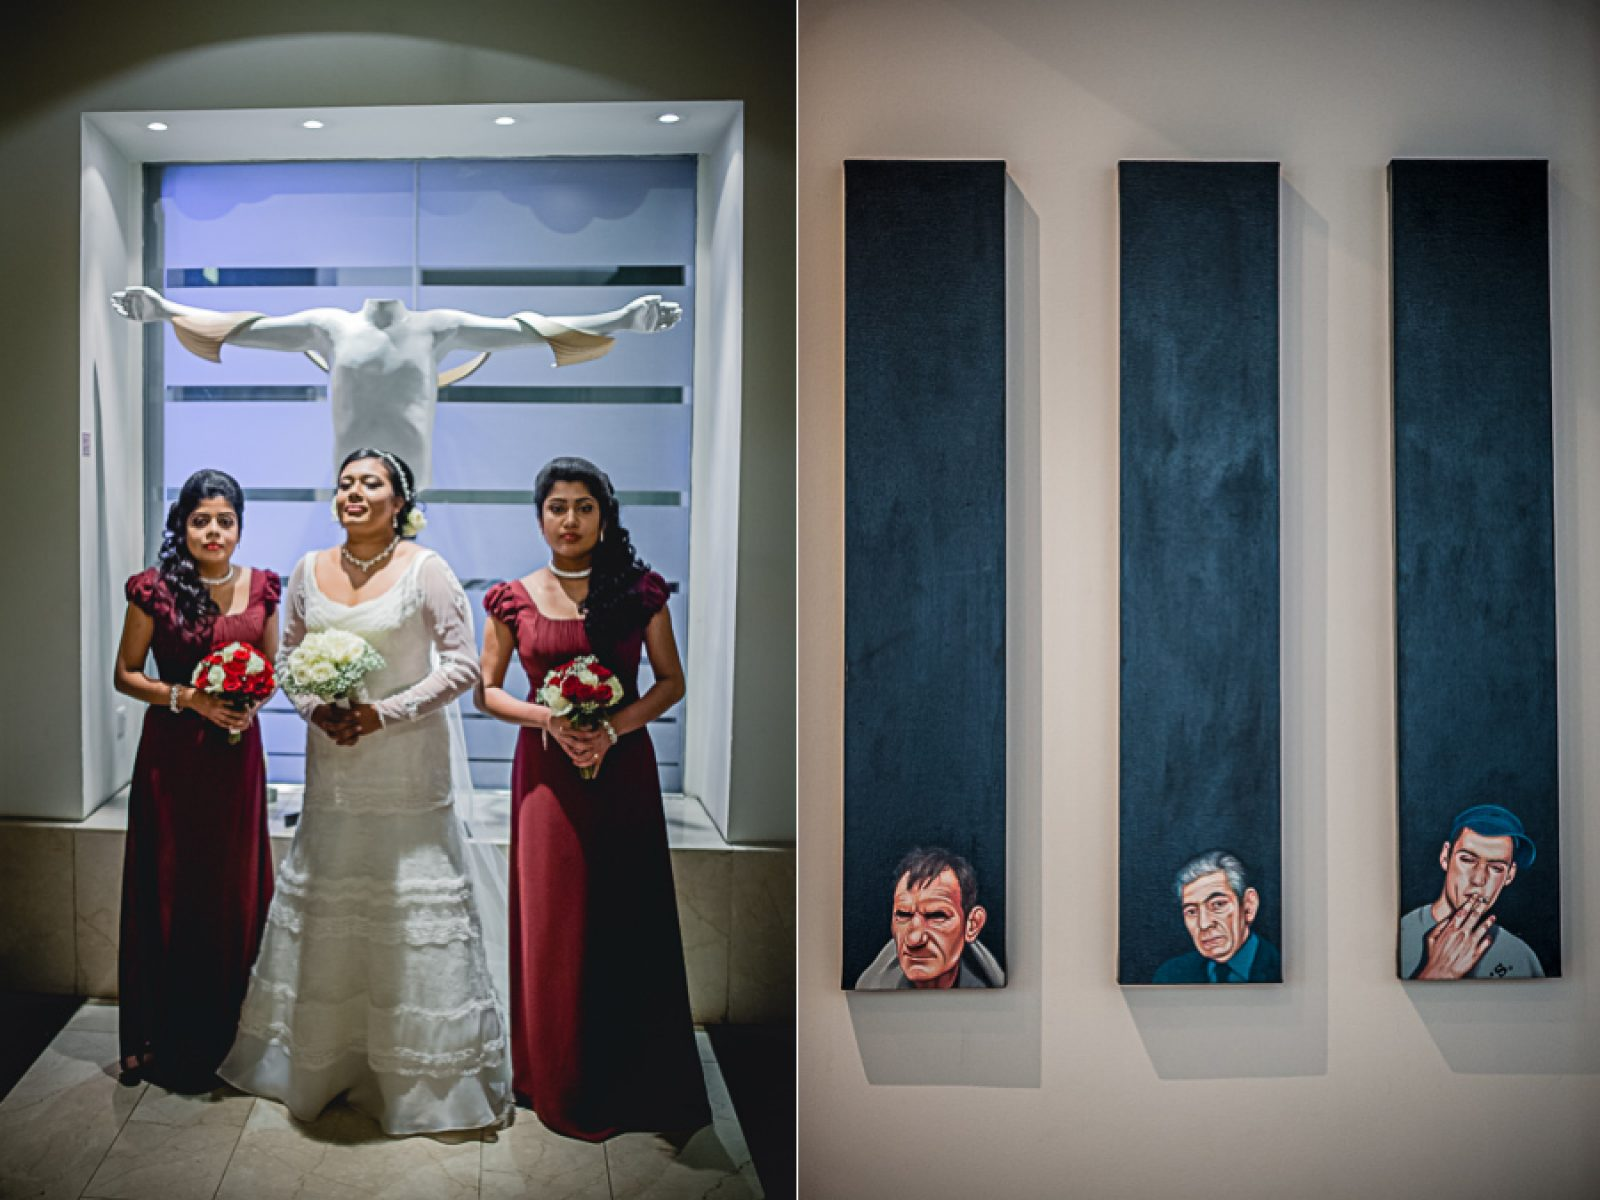 241 1600x1200 - Darshani and Anthony - wedding photographer in London